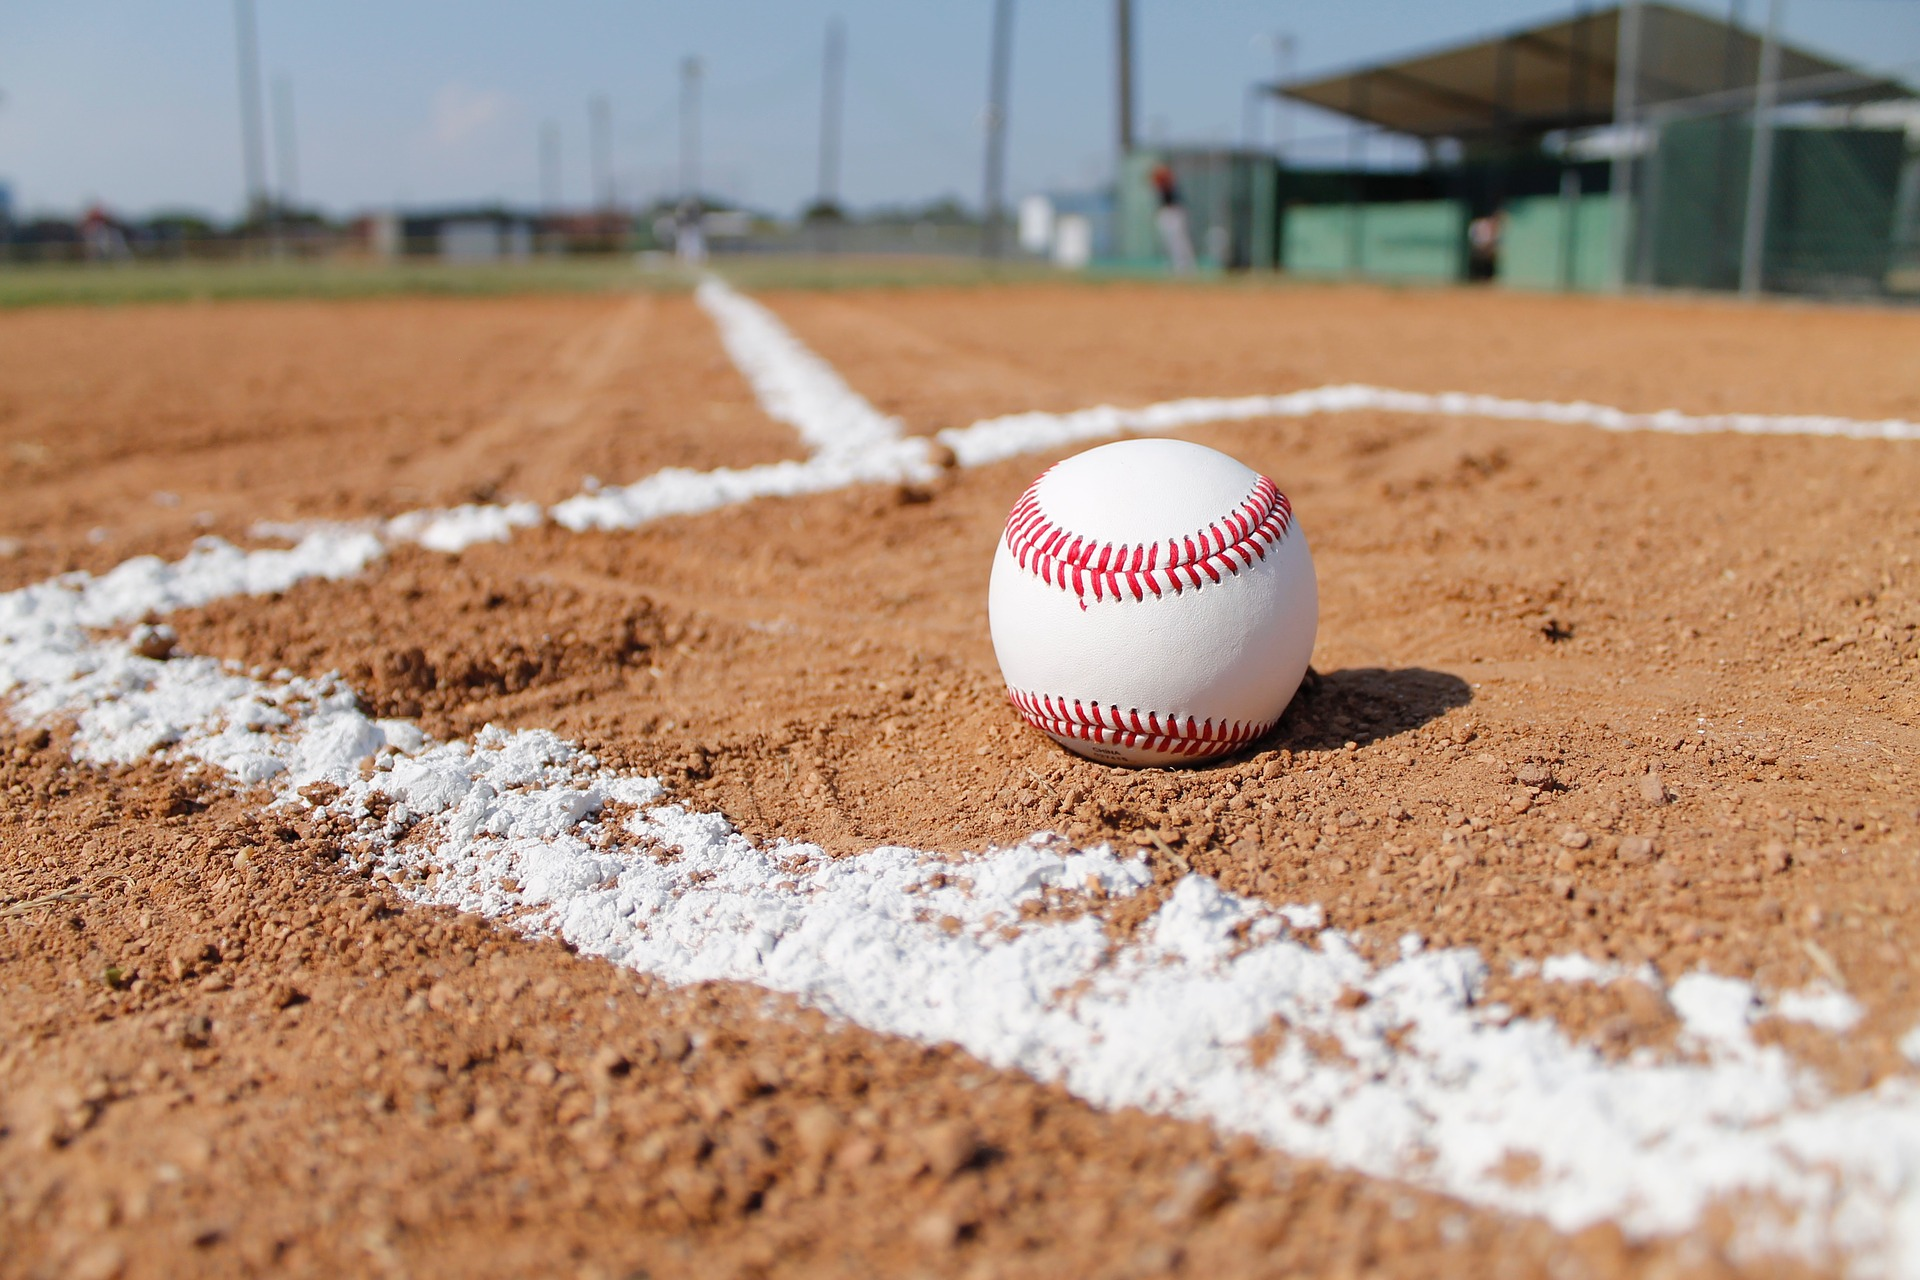 Baseball ball on a baseball field. The ball is placed in a boxed area used white pitch lines: Baseball vs Softball [MindfuseBaseball.com]